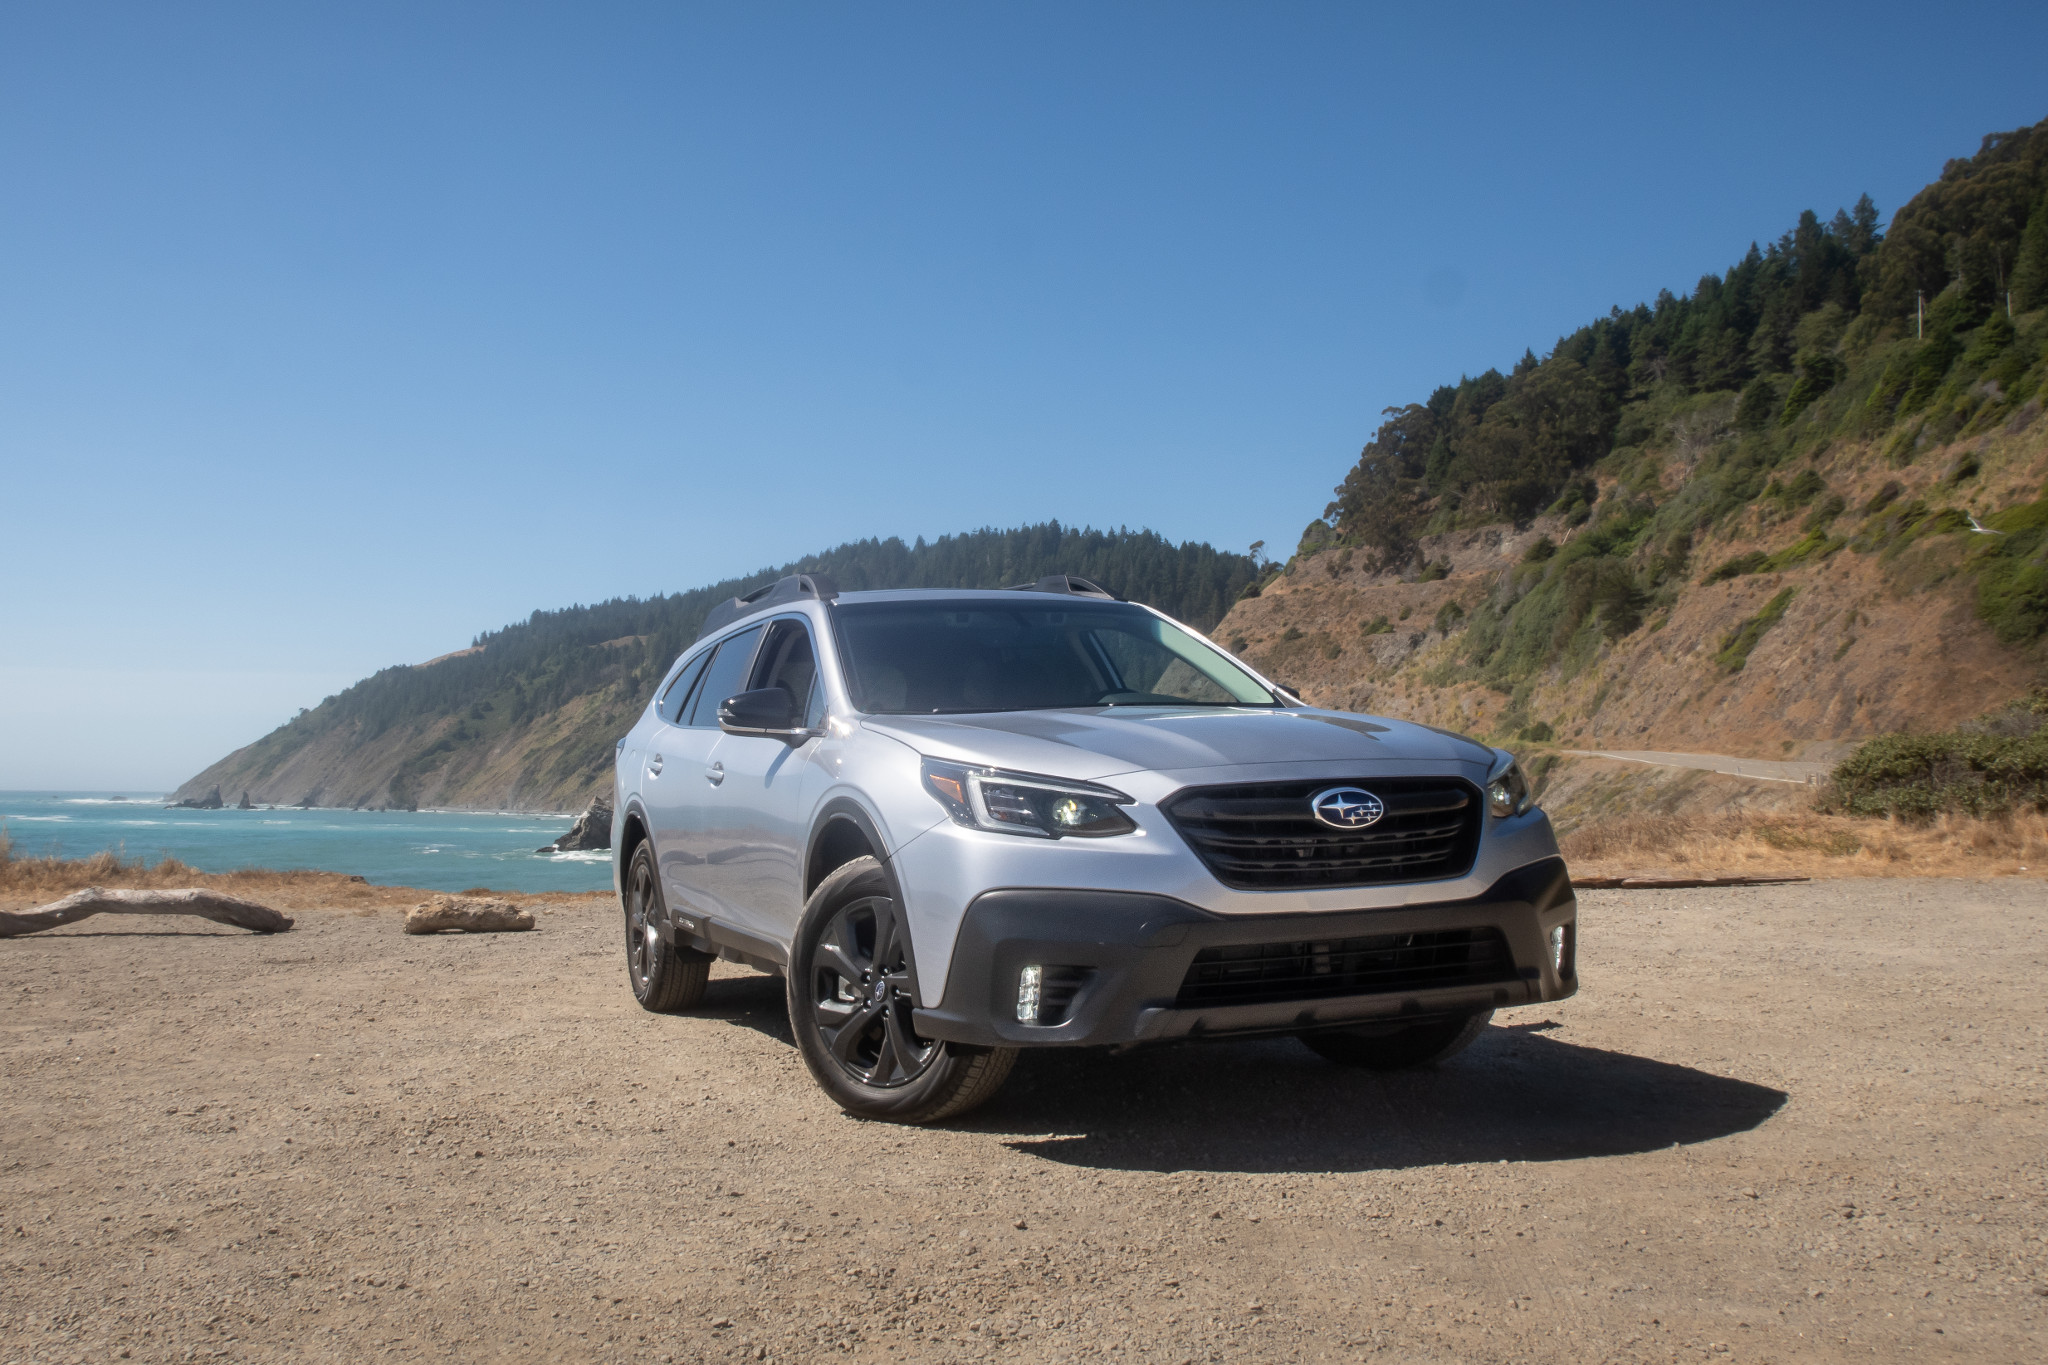 2020 Subaru Outback: 10 Things We Like and 3 Things We Don't